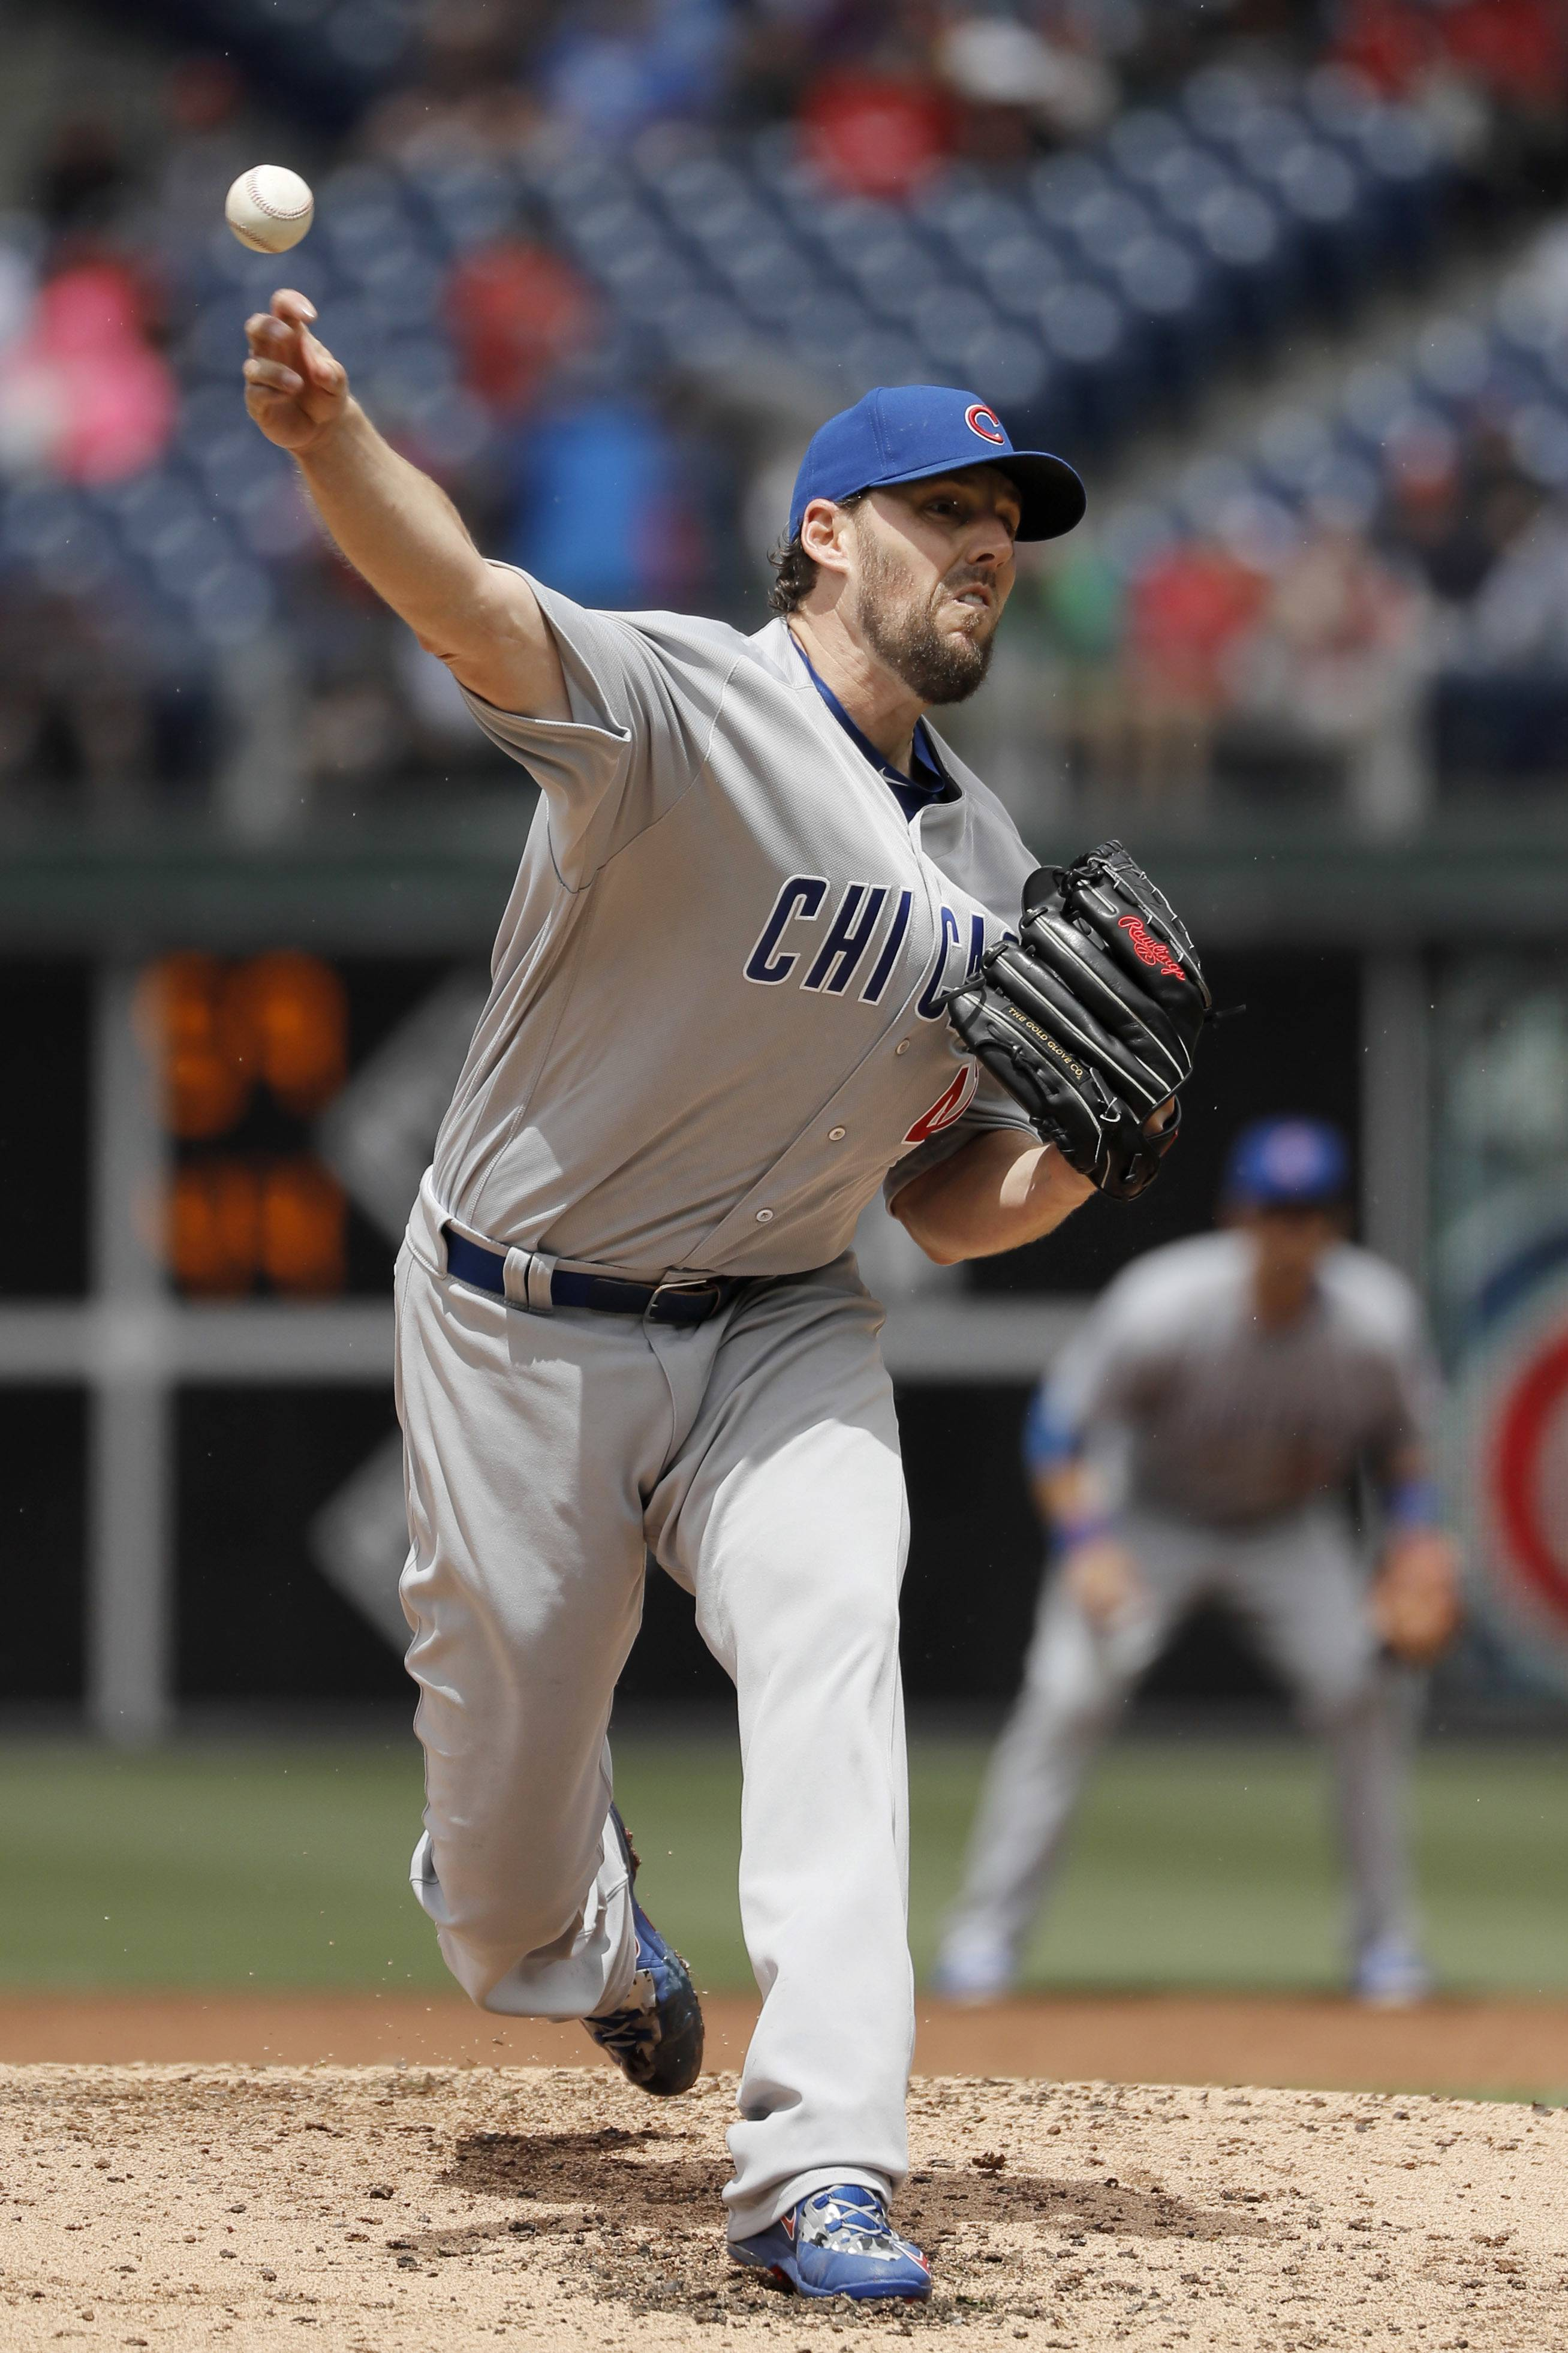 Chicago Cubs' John Lackey pitches during the third inning of a baseball game against the Philadelphia Phillies, Wednesday, June 8, 2016, in Philadelphia. (AP Photo/Matt Slocum)